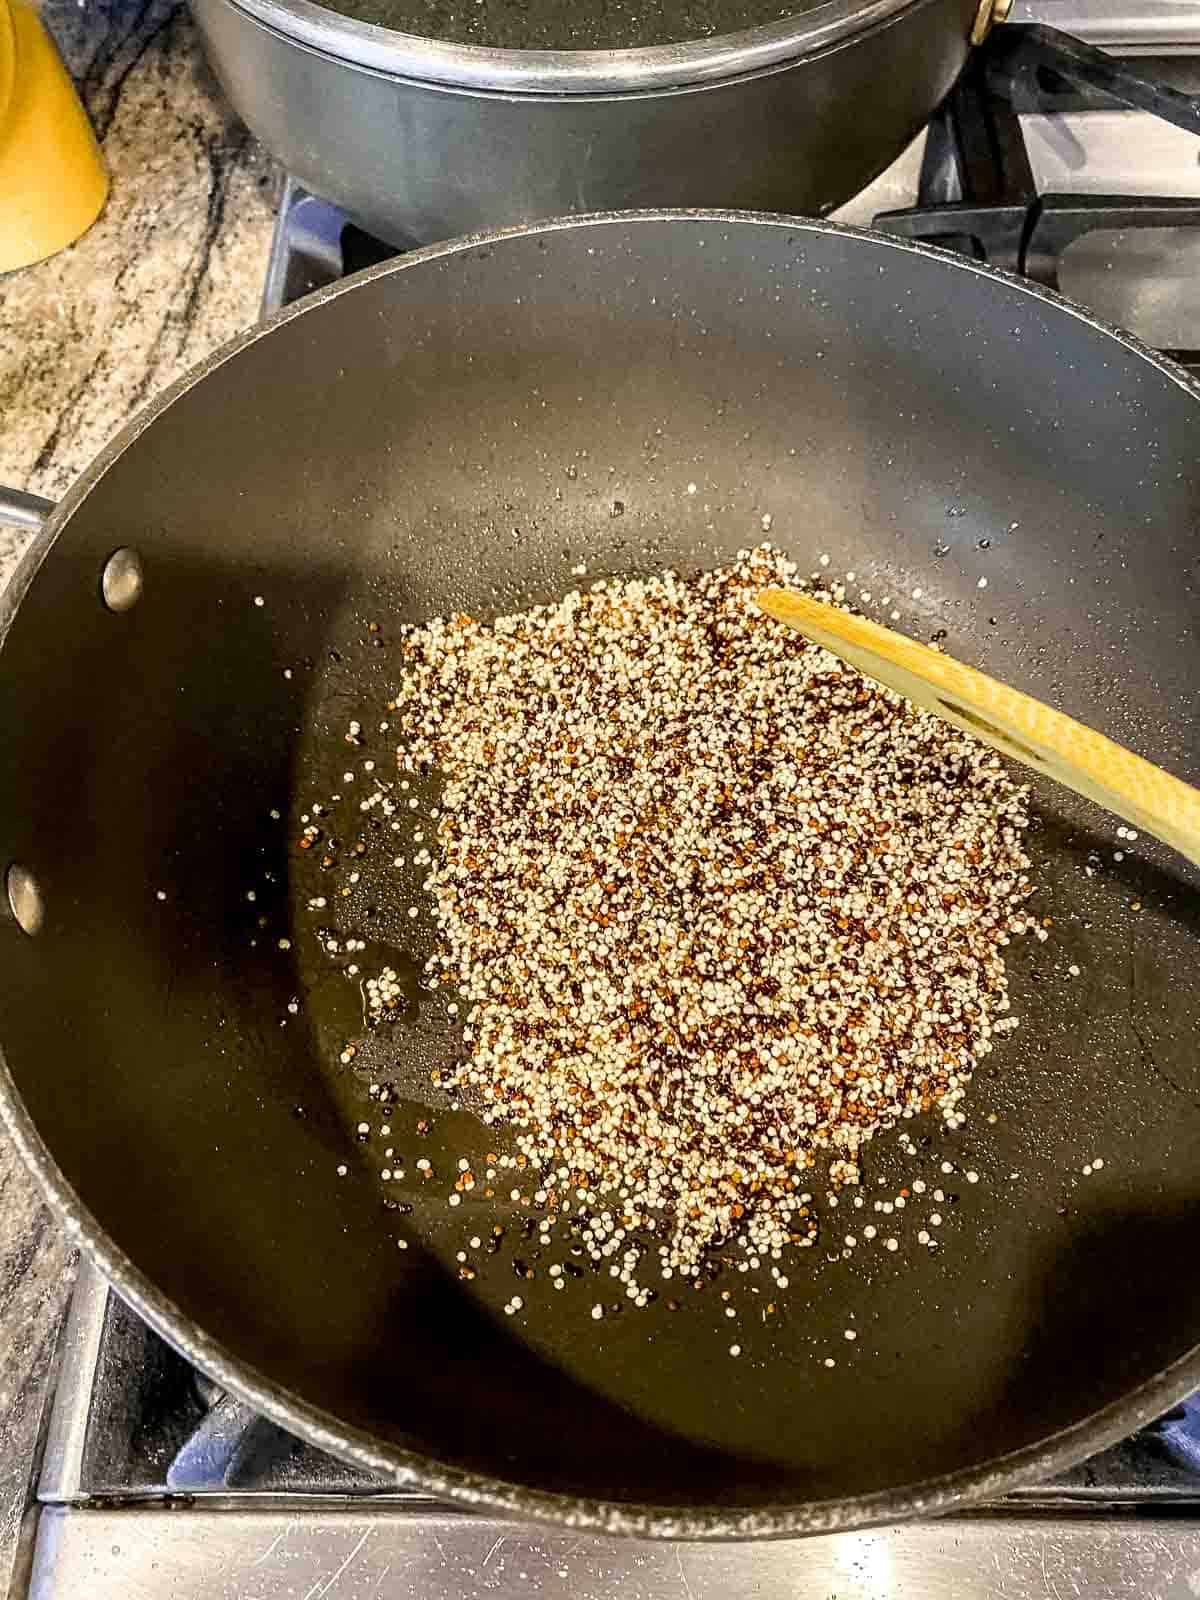 Sauteing quinoa and oil in a pot